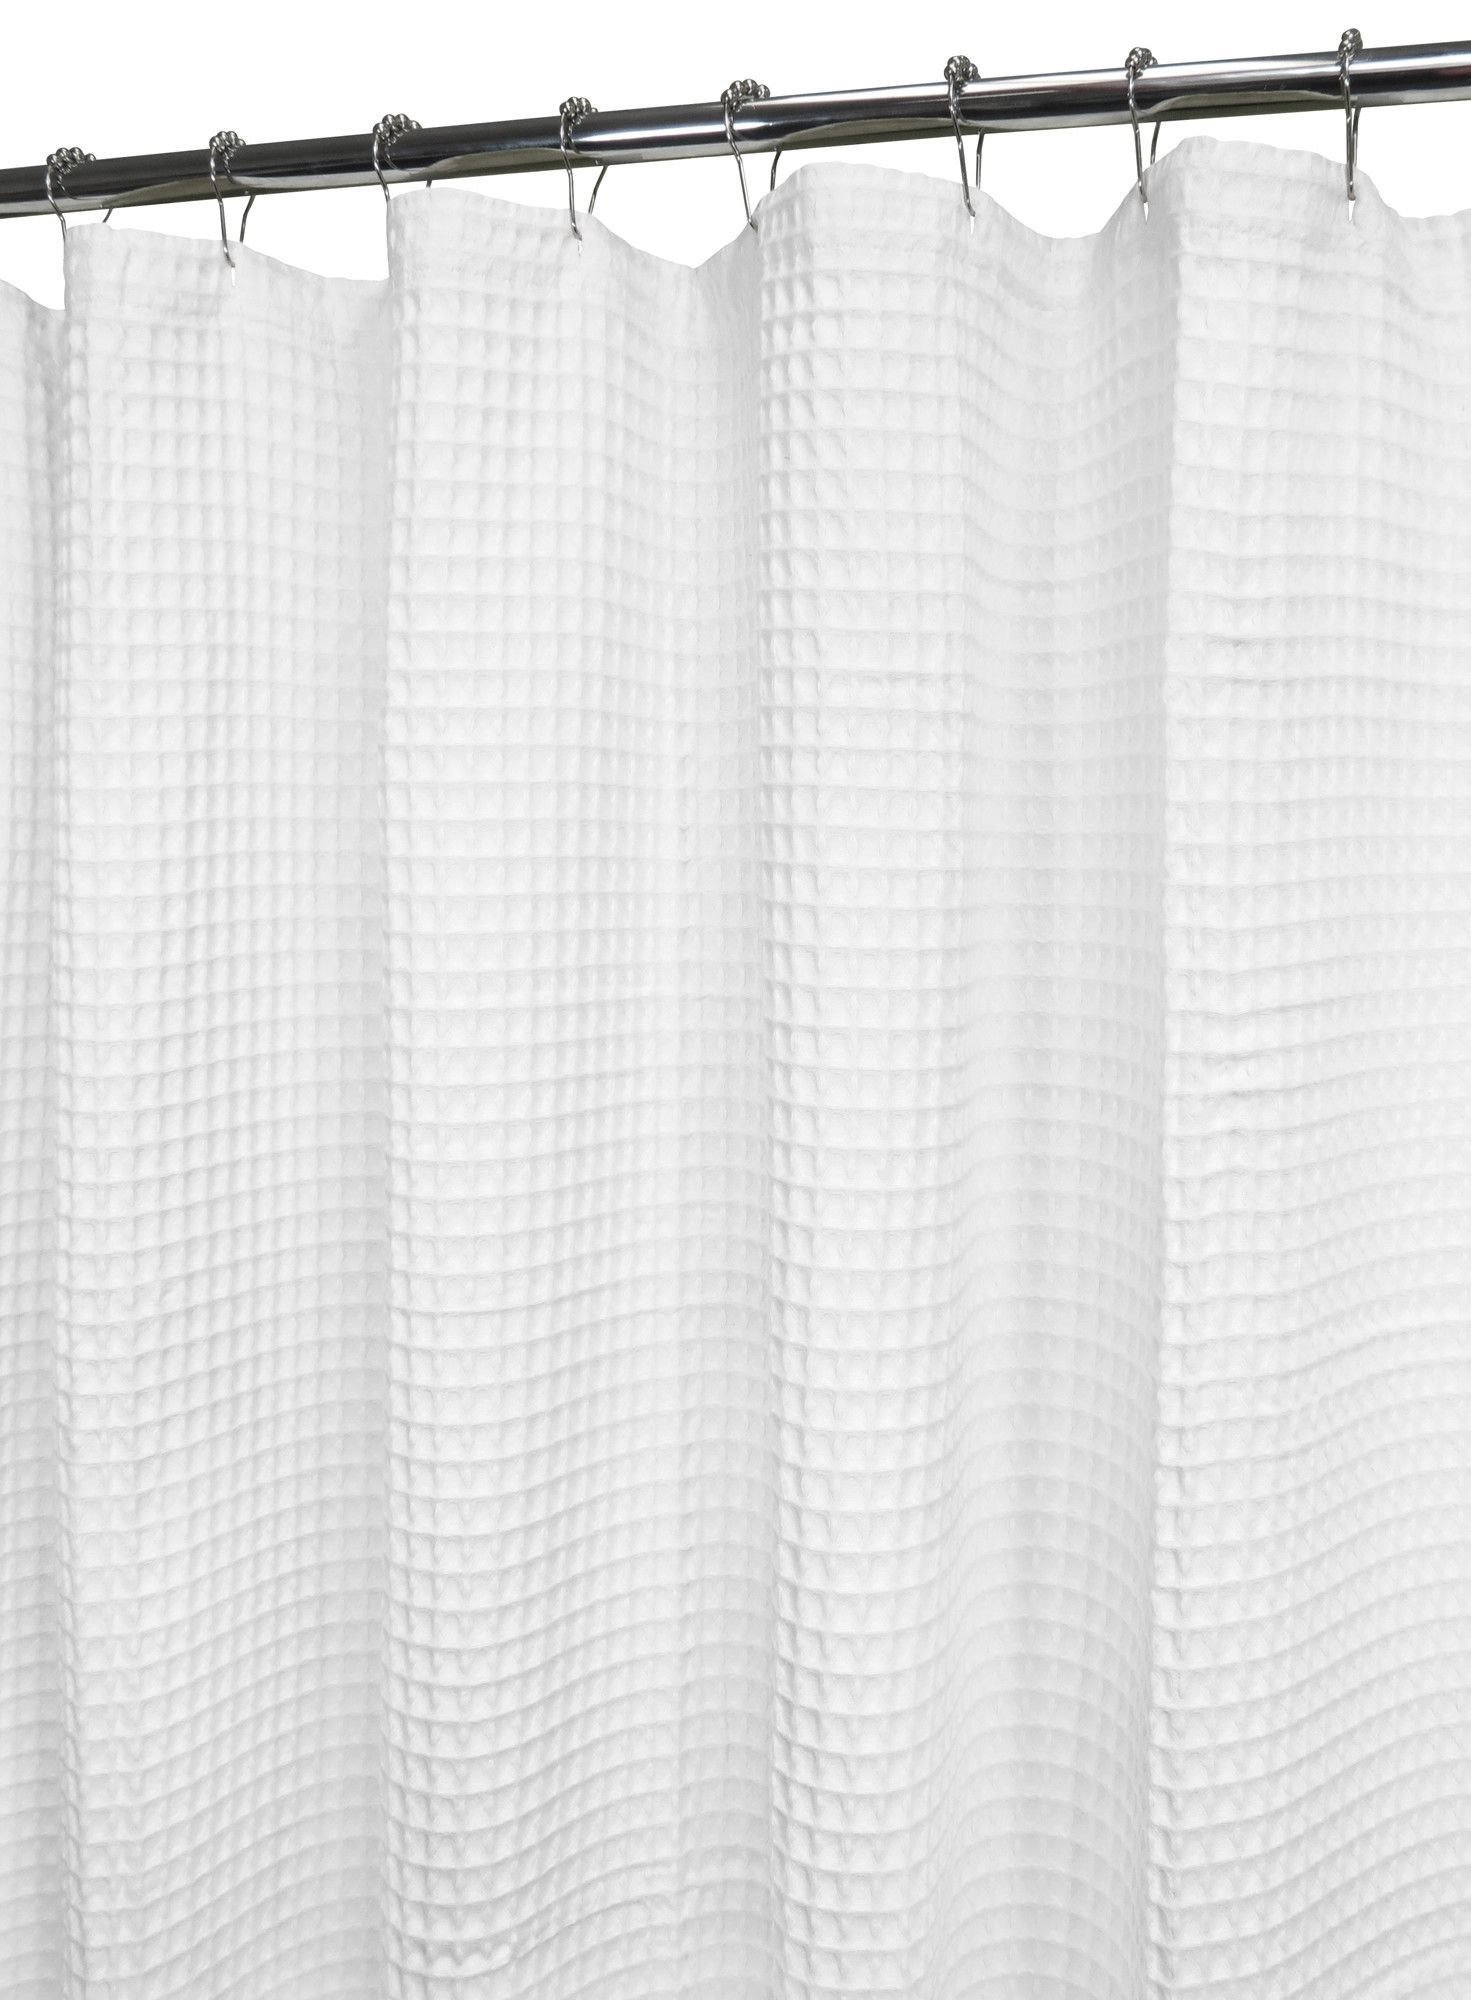 Escondido 100% Cotton Ultra Spa Shower Curtain